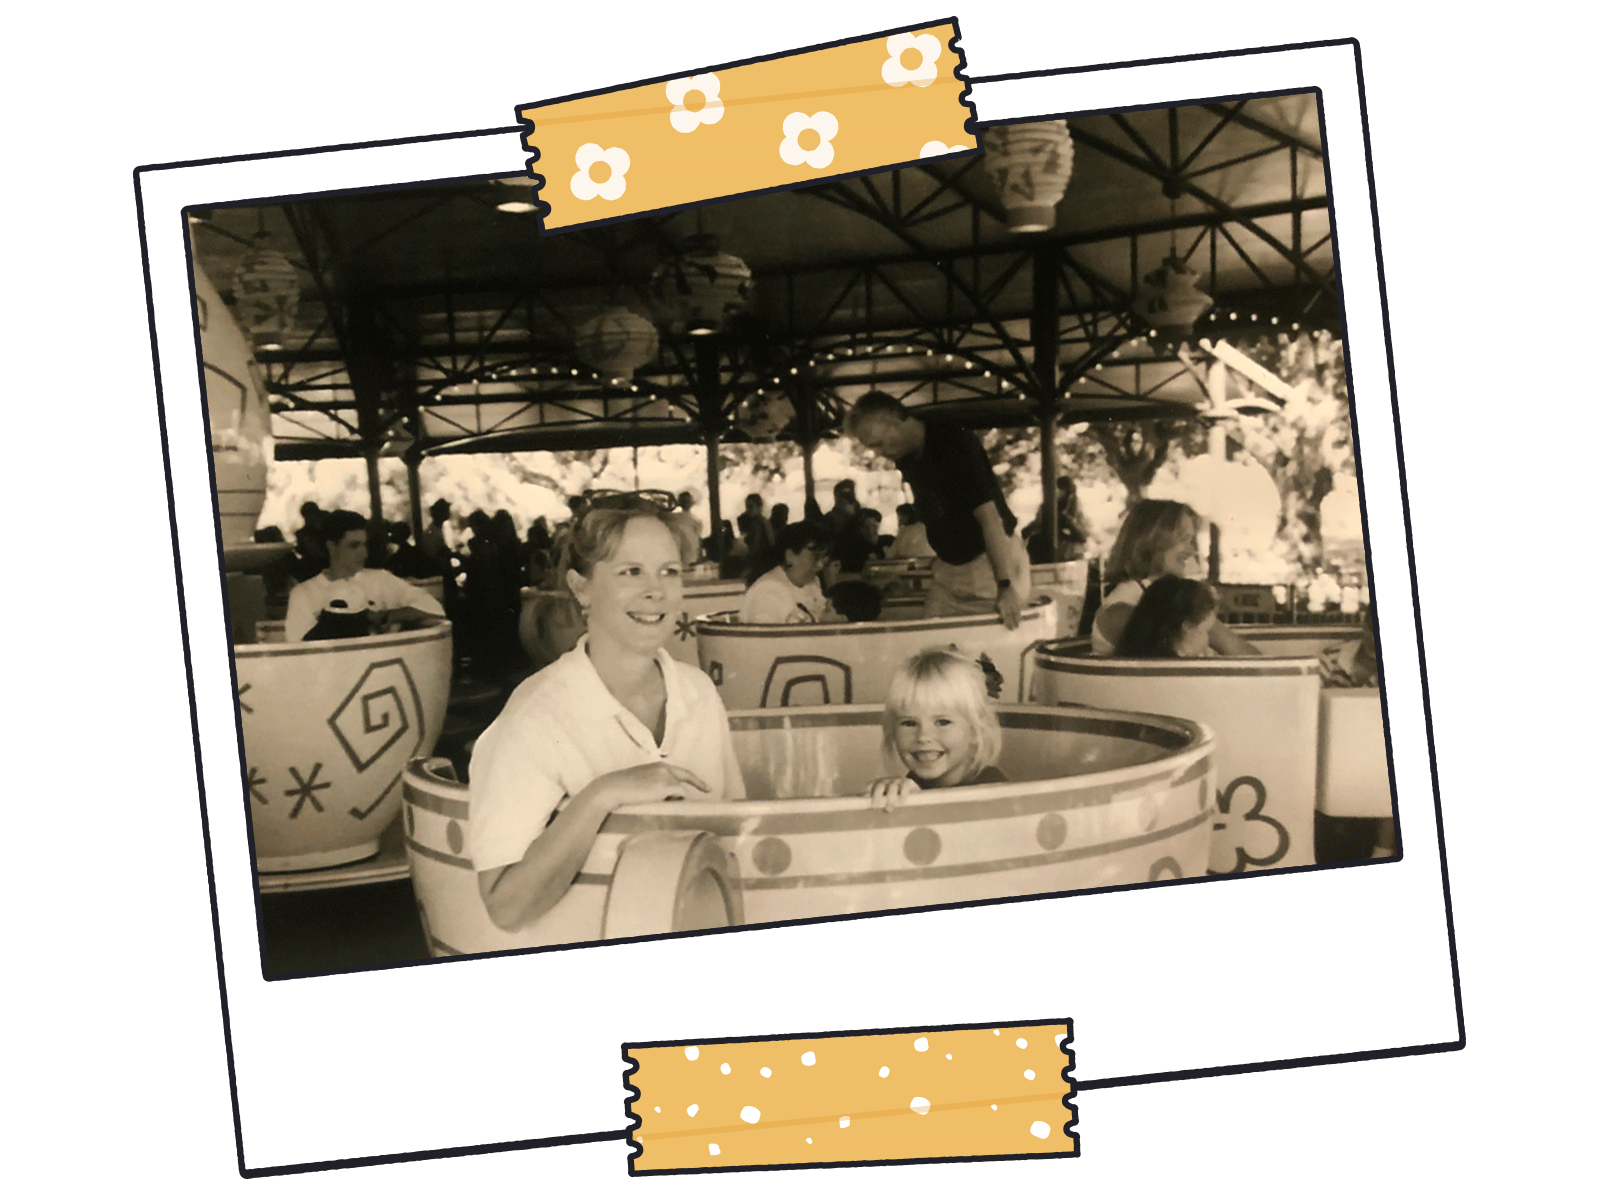 Sepia-toned mother and daughter on merry-go-round